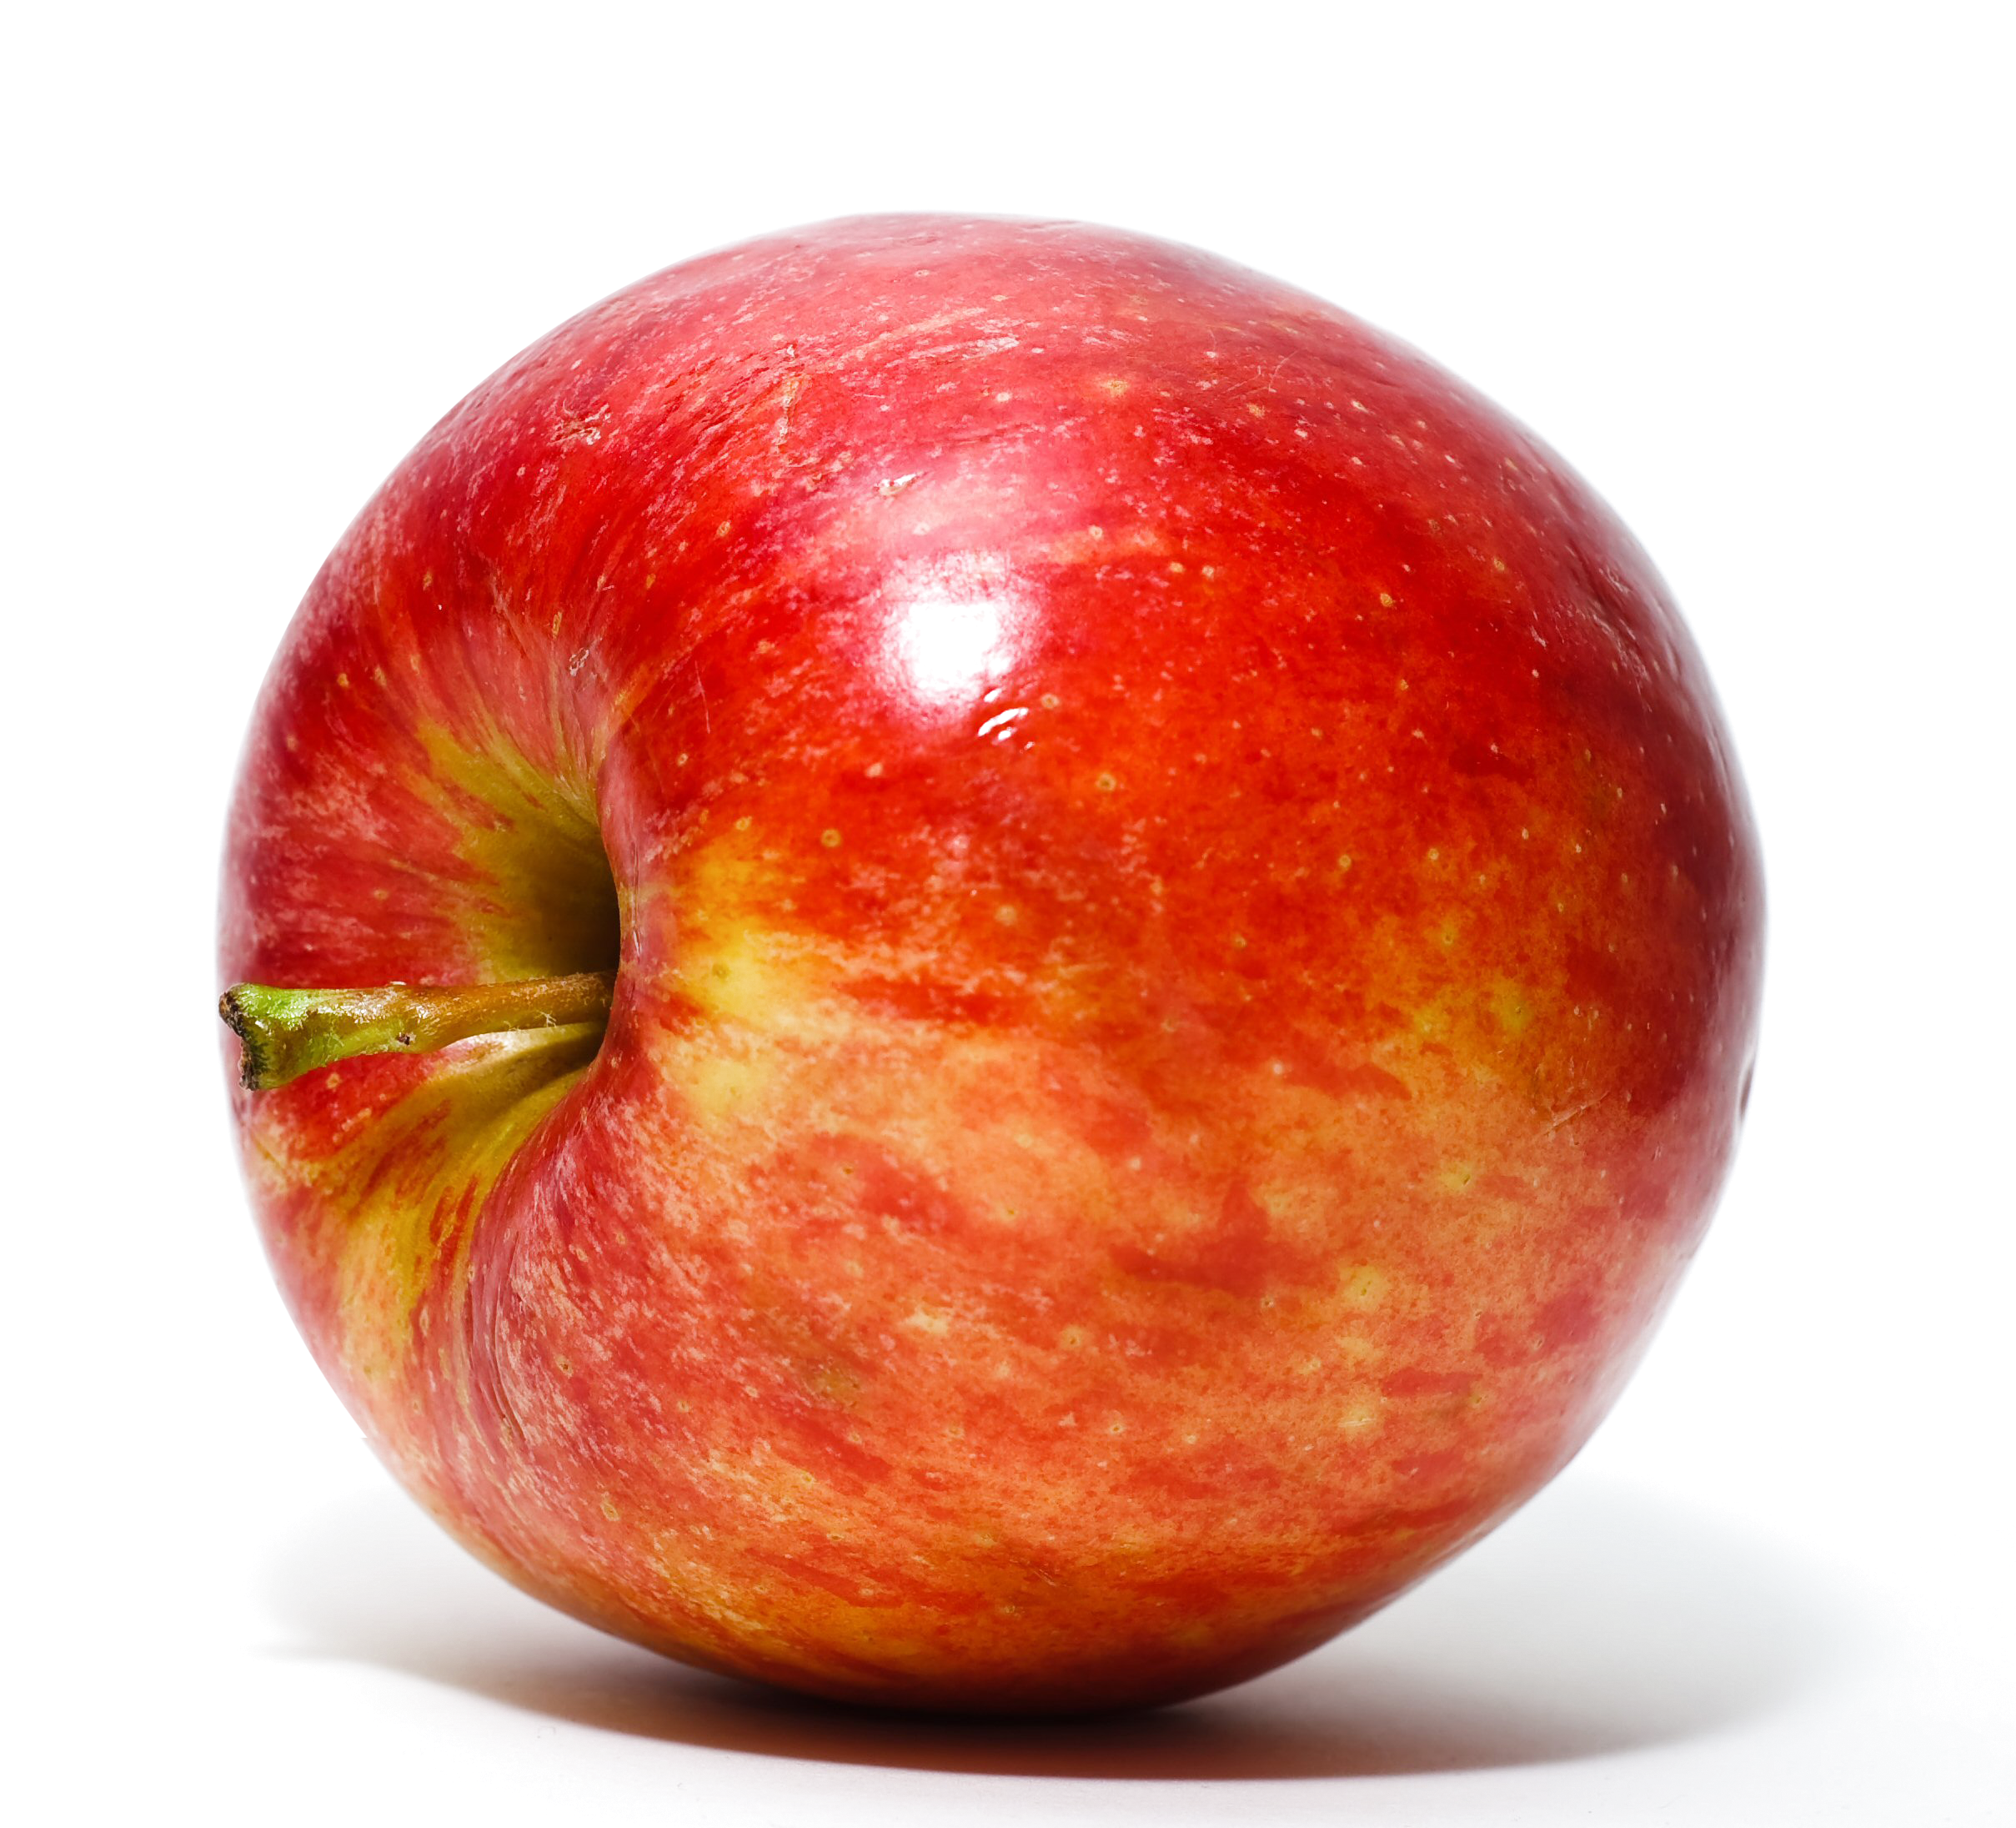 Red Apple PNG Image